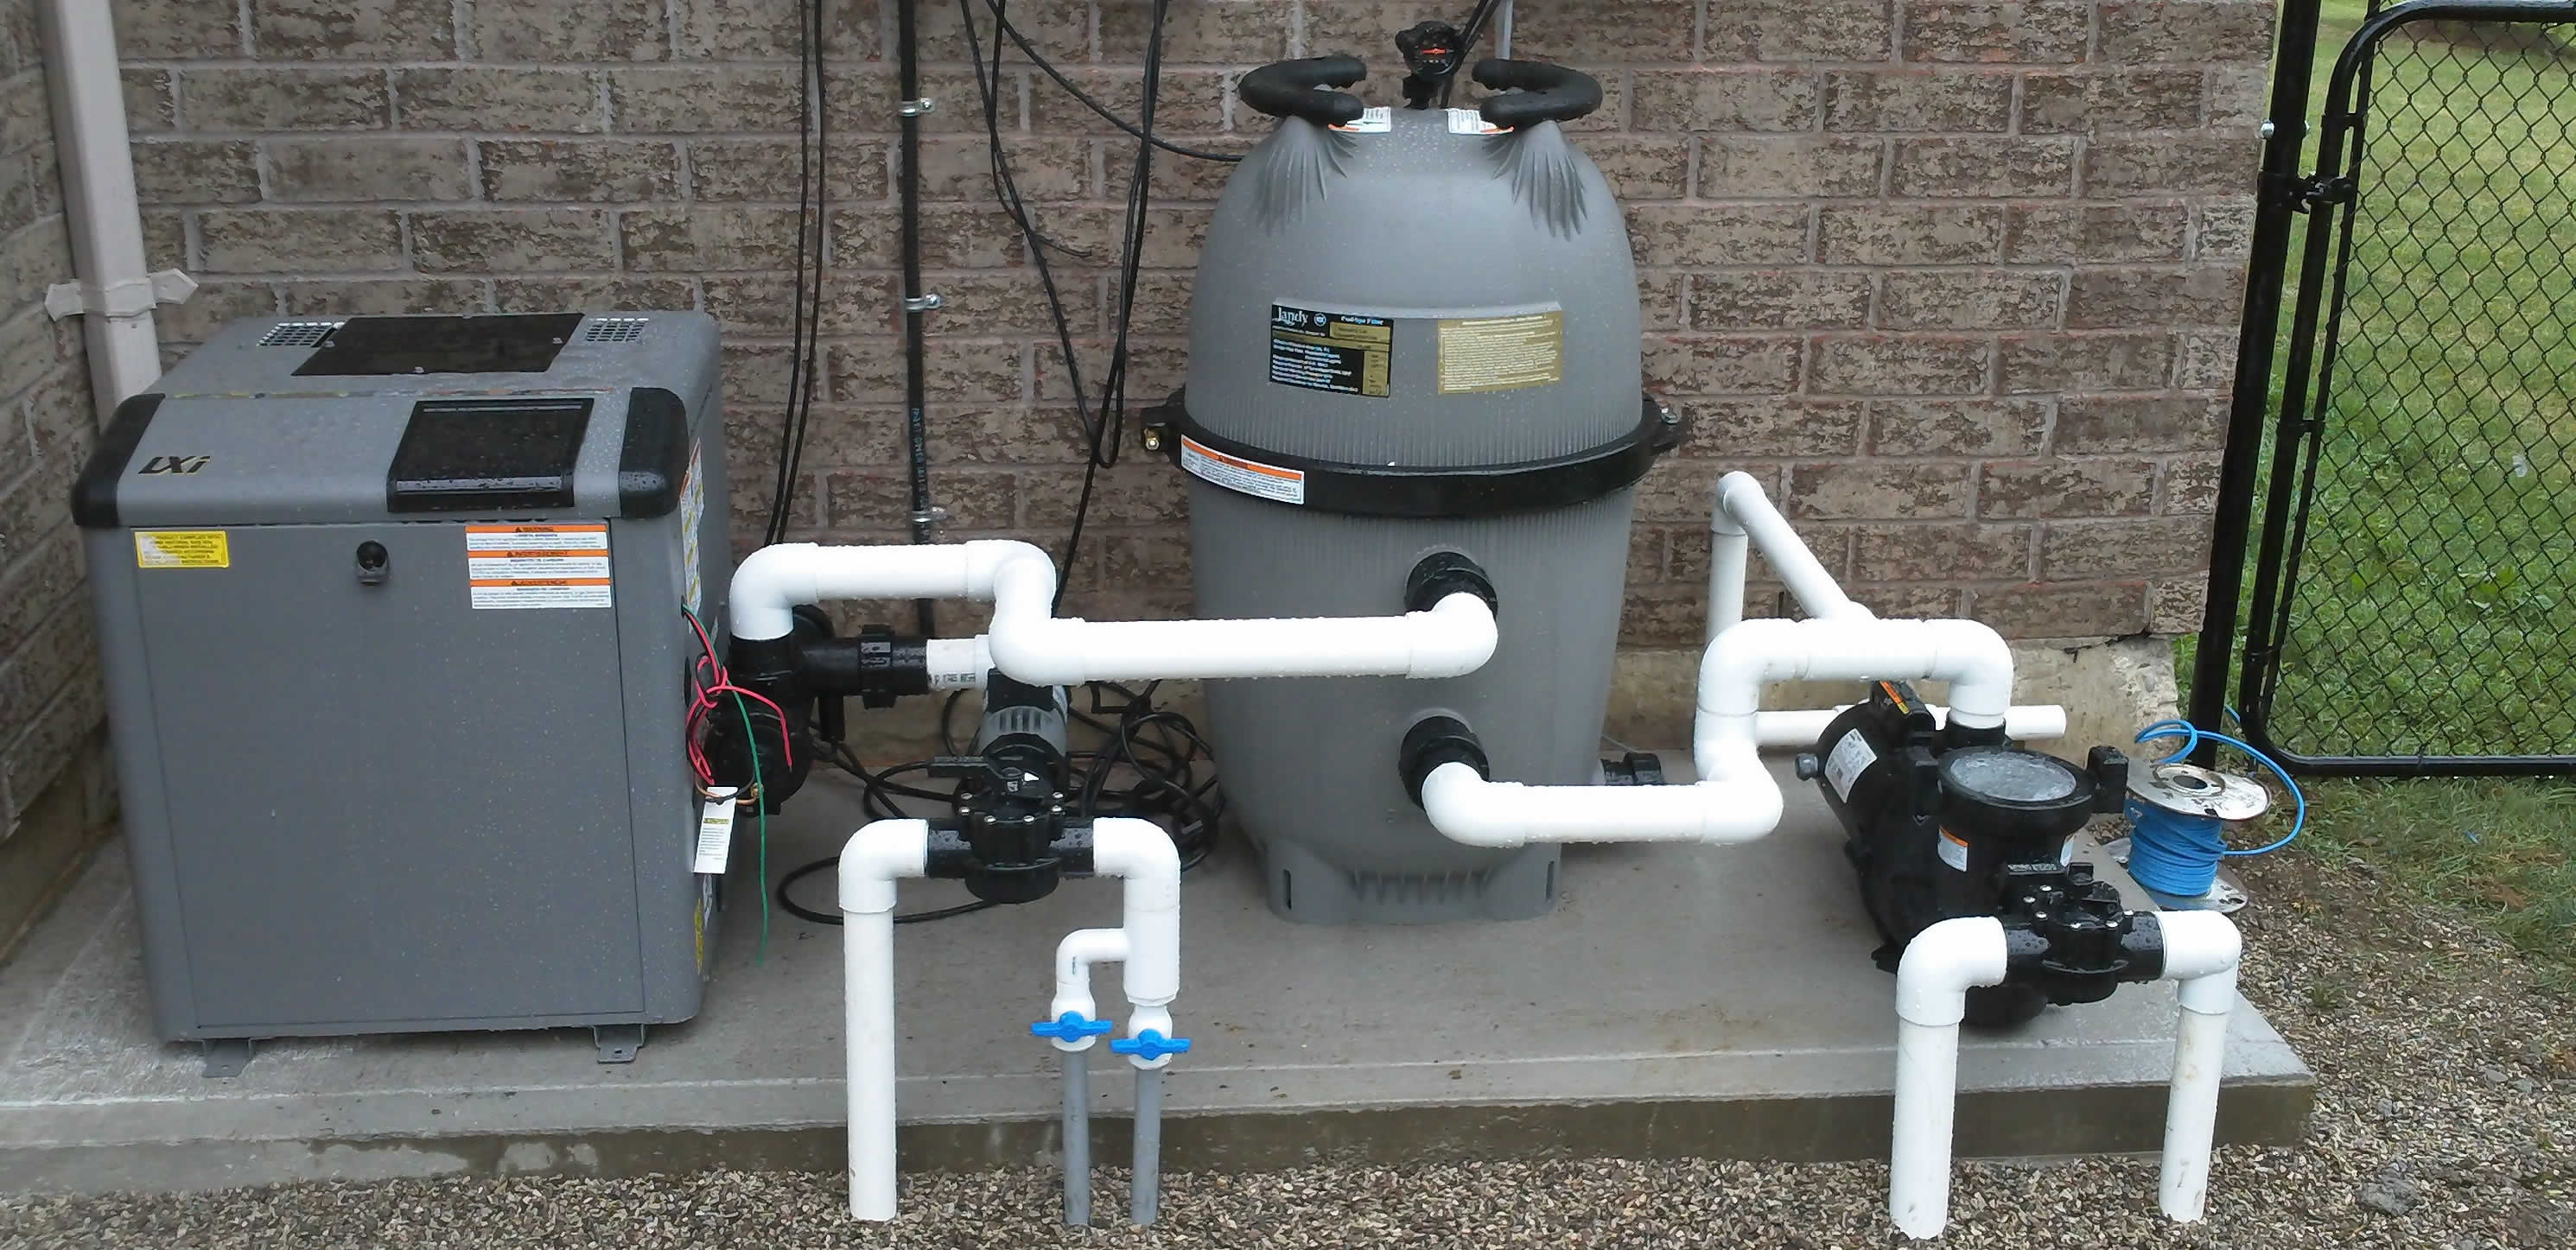 With Above Ground Pool Heater Plumbing Diagram Further Swimming Pool